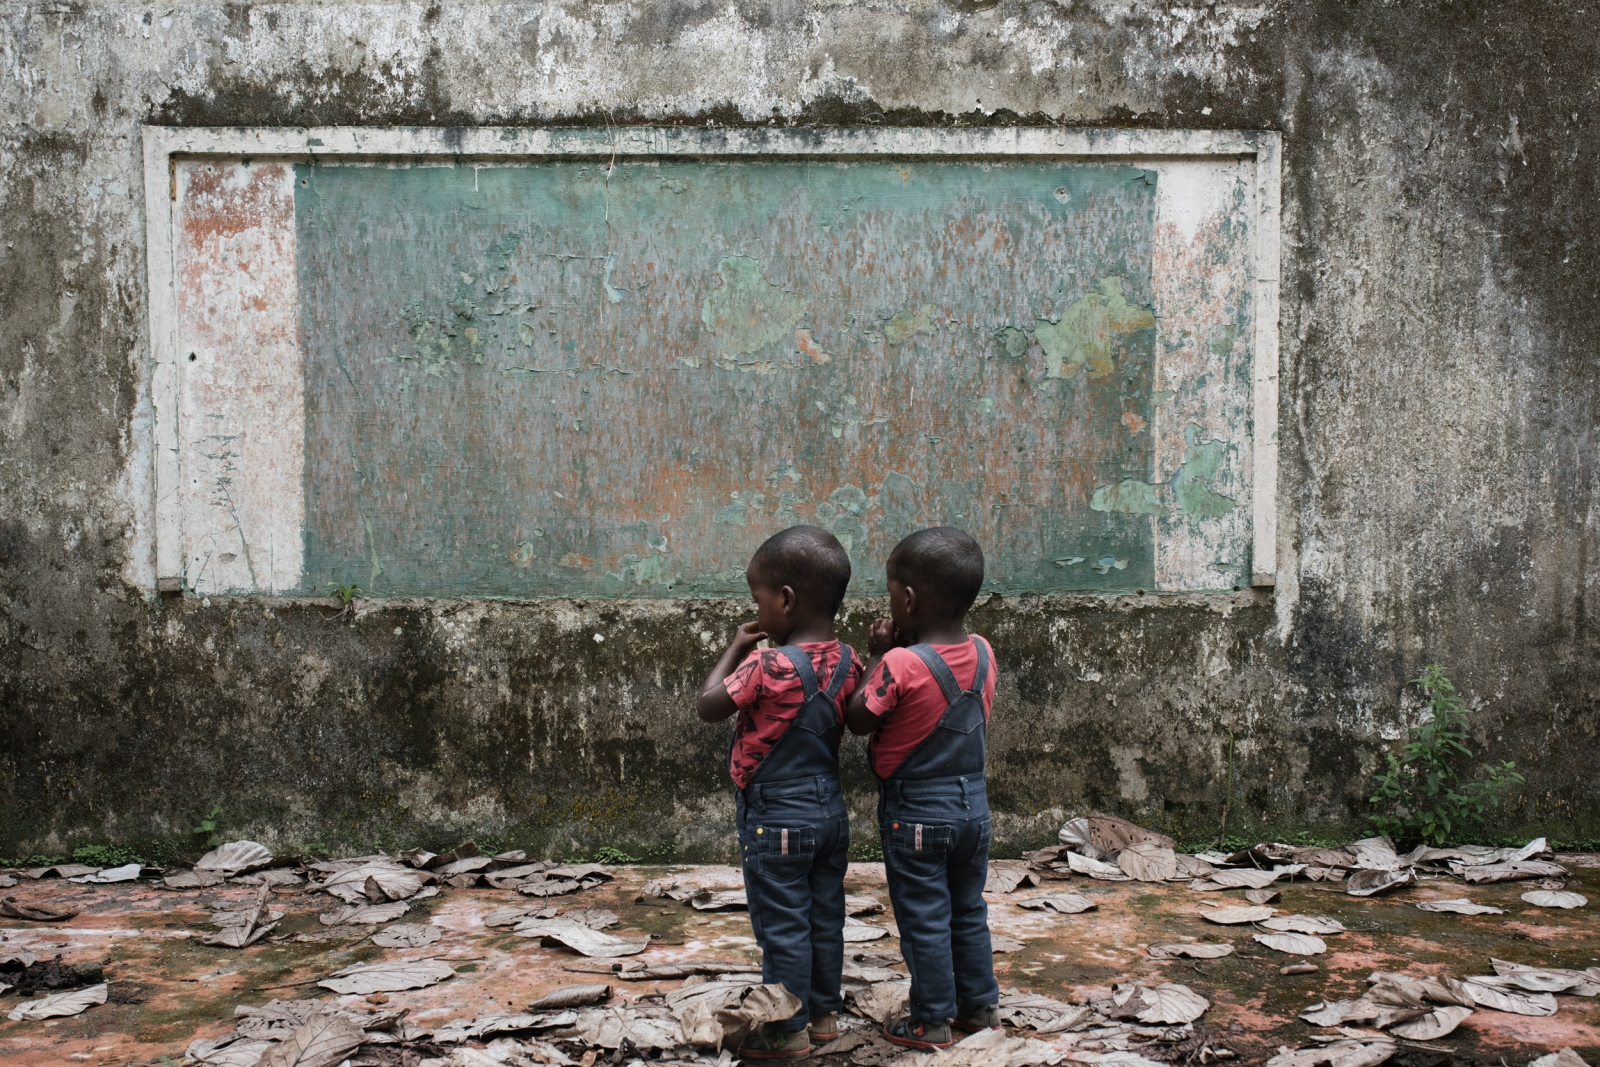 Two twins stand in front of what was once the chalkboard of one of the classrooms of Old Bellavista. May 2nd, 2017. Old Bellavista, Bojayá, Colombia.